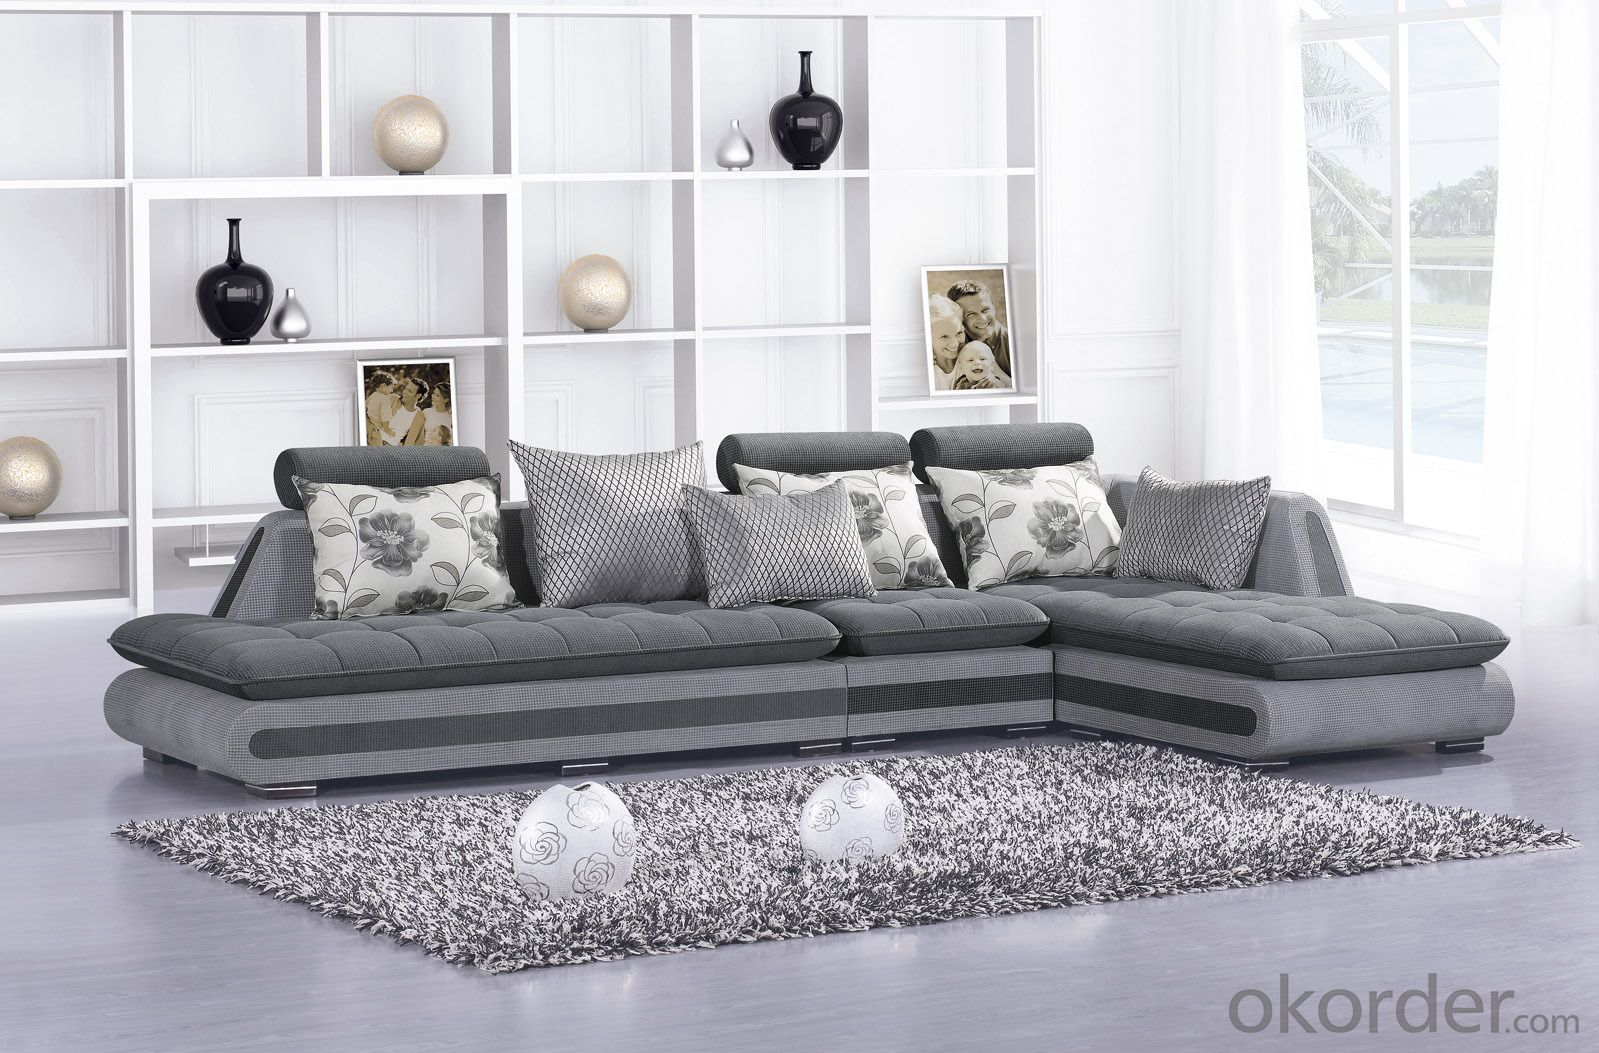 Modern Design Living Room Luxury Rattan Sofa Set